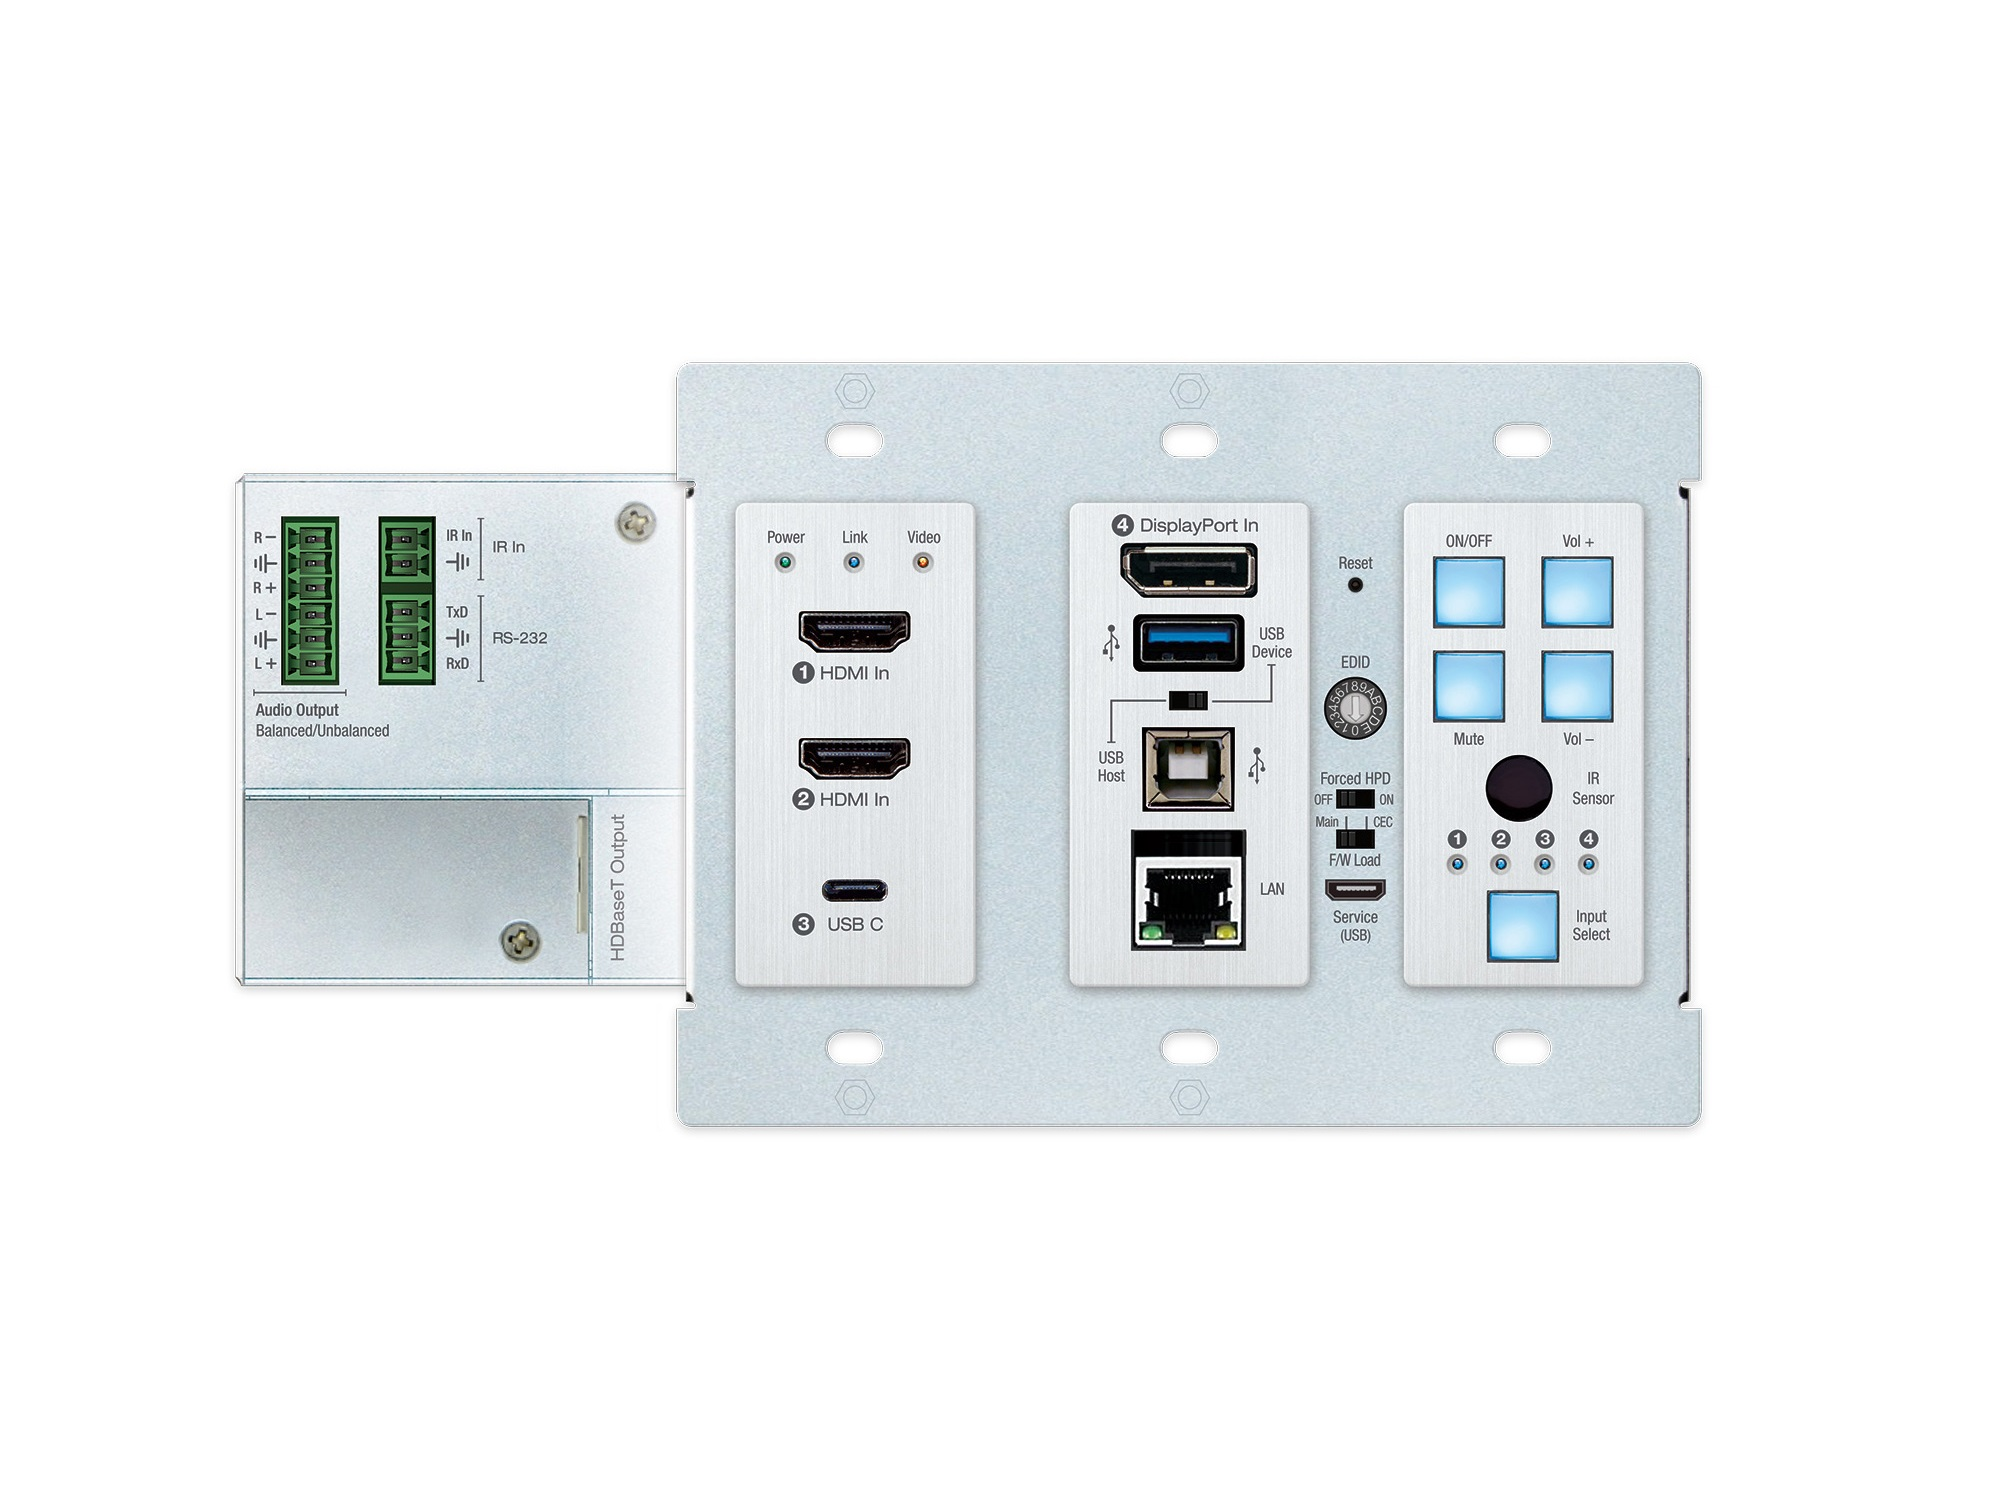 Key Digital KD-X4x1WUTx 4x1 4K/18G 100m HDBT PoH Wall Plate Switcher with 2x HDMI/DP/USB-C/USB/LAN/ARC/Audio De-Embed/IR/RS-232 (Transmitter Only)